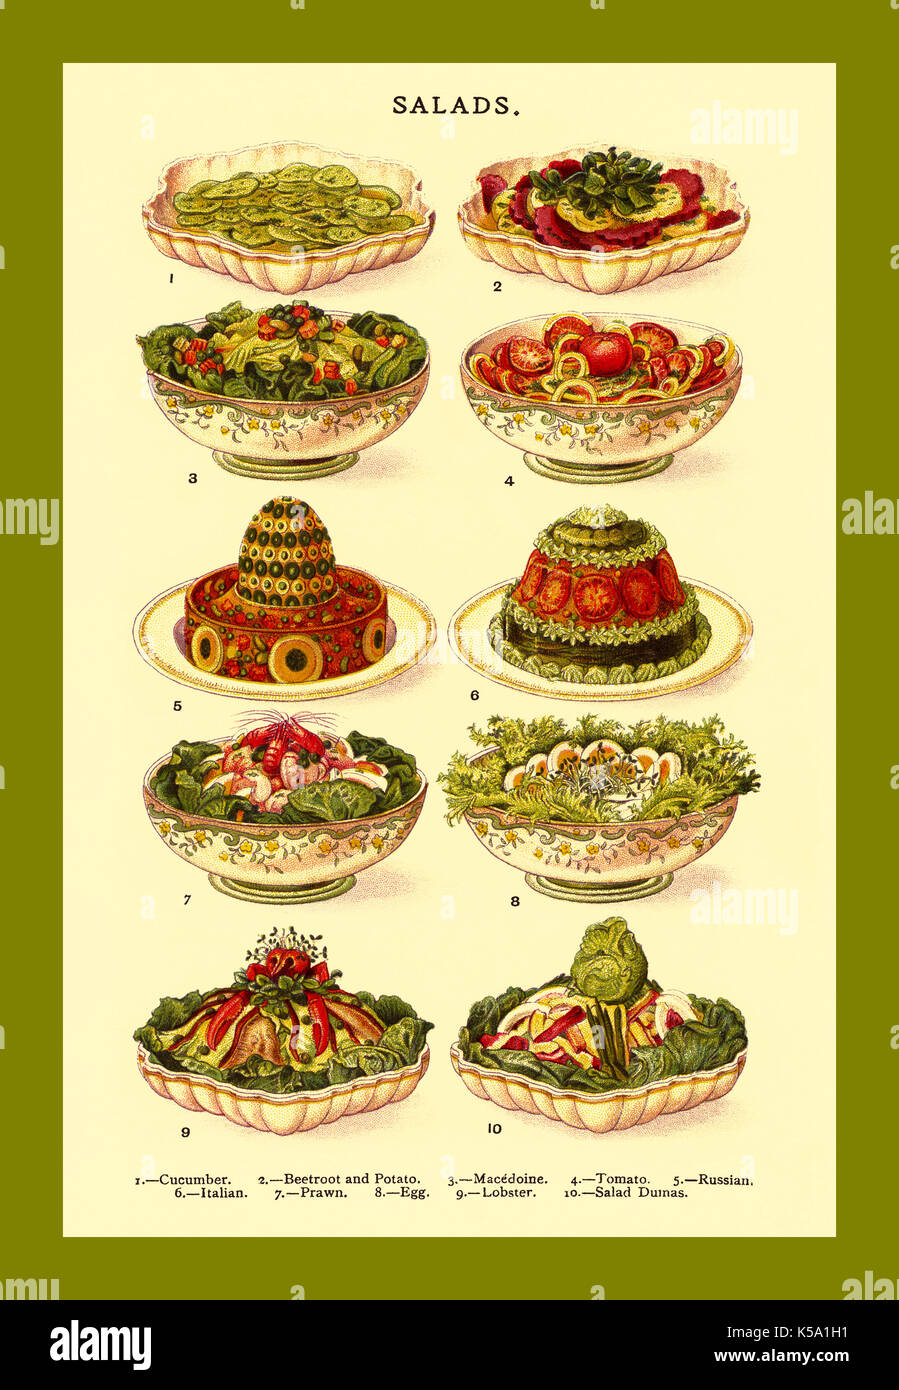 SALADS Vintage lithograph colour page illustration 1800's Mrs Beeton's cookery book - salads L-R Cucumber, Beetroot and Potato, Macedoine, Tomato, Russian, Italian, Prawn, Egg, Lobster, Salad Dumas. - Stock Image